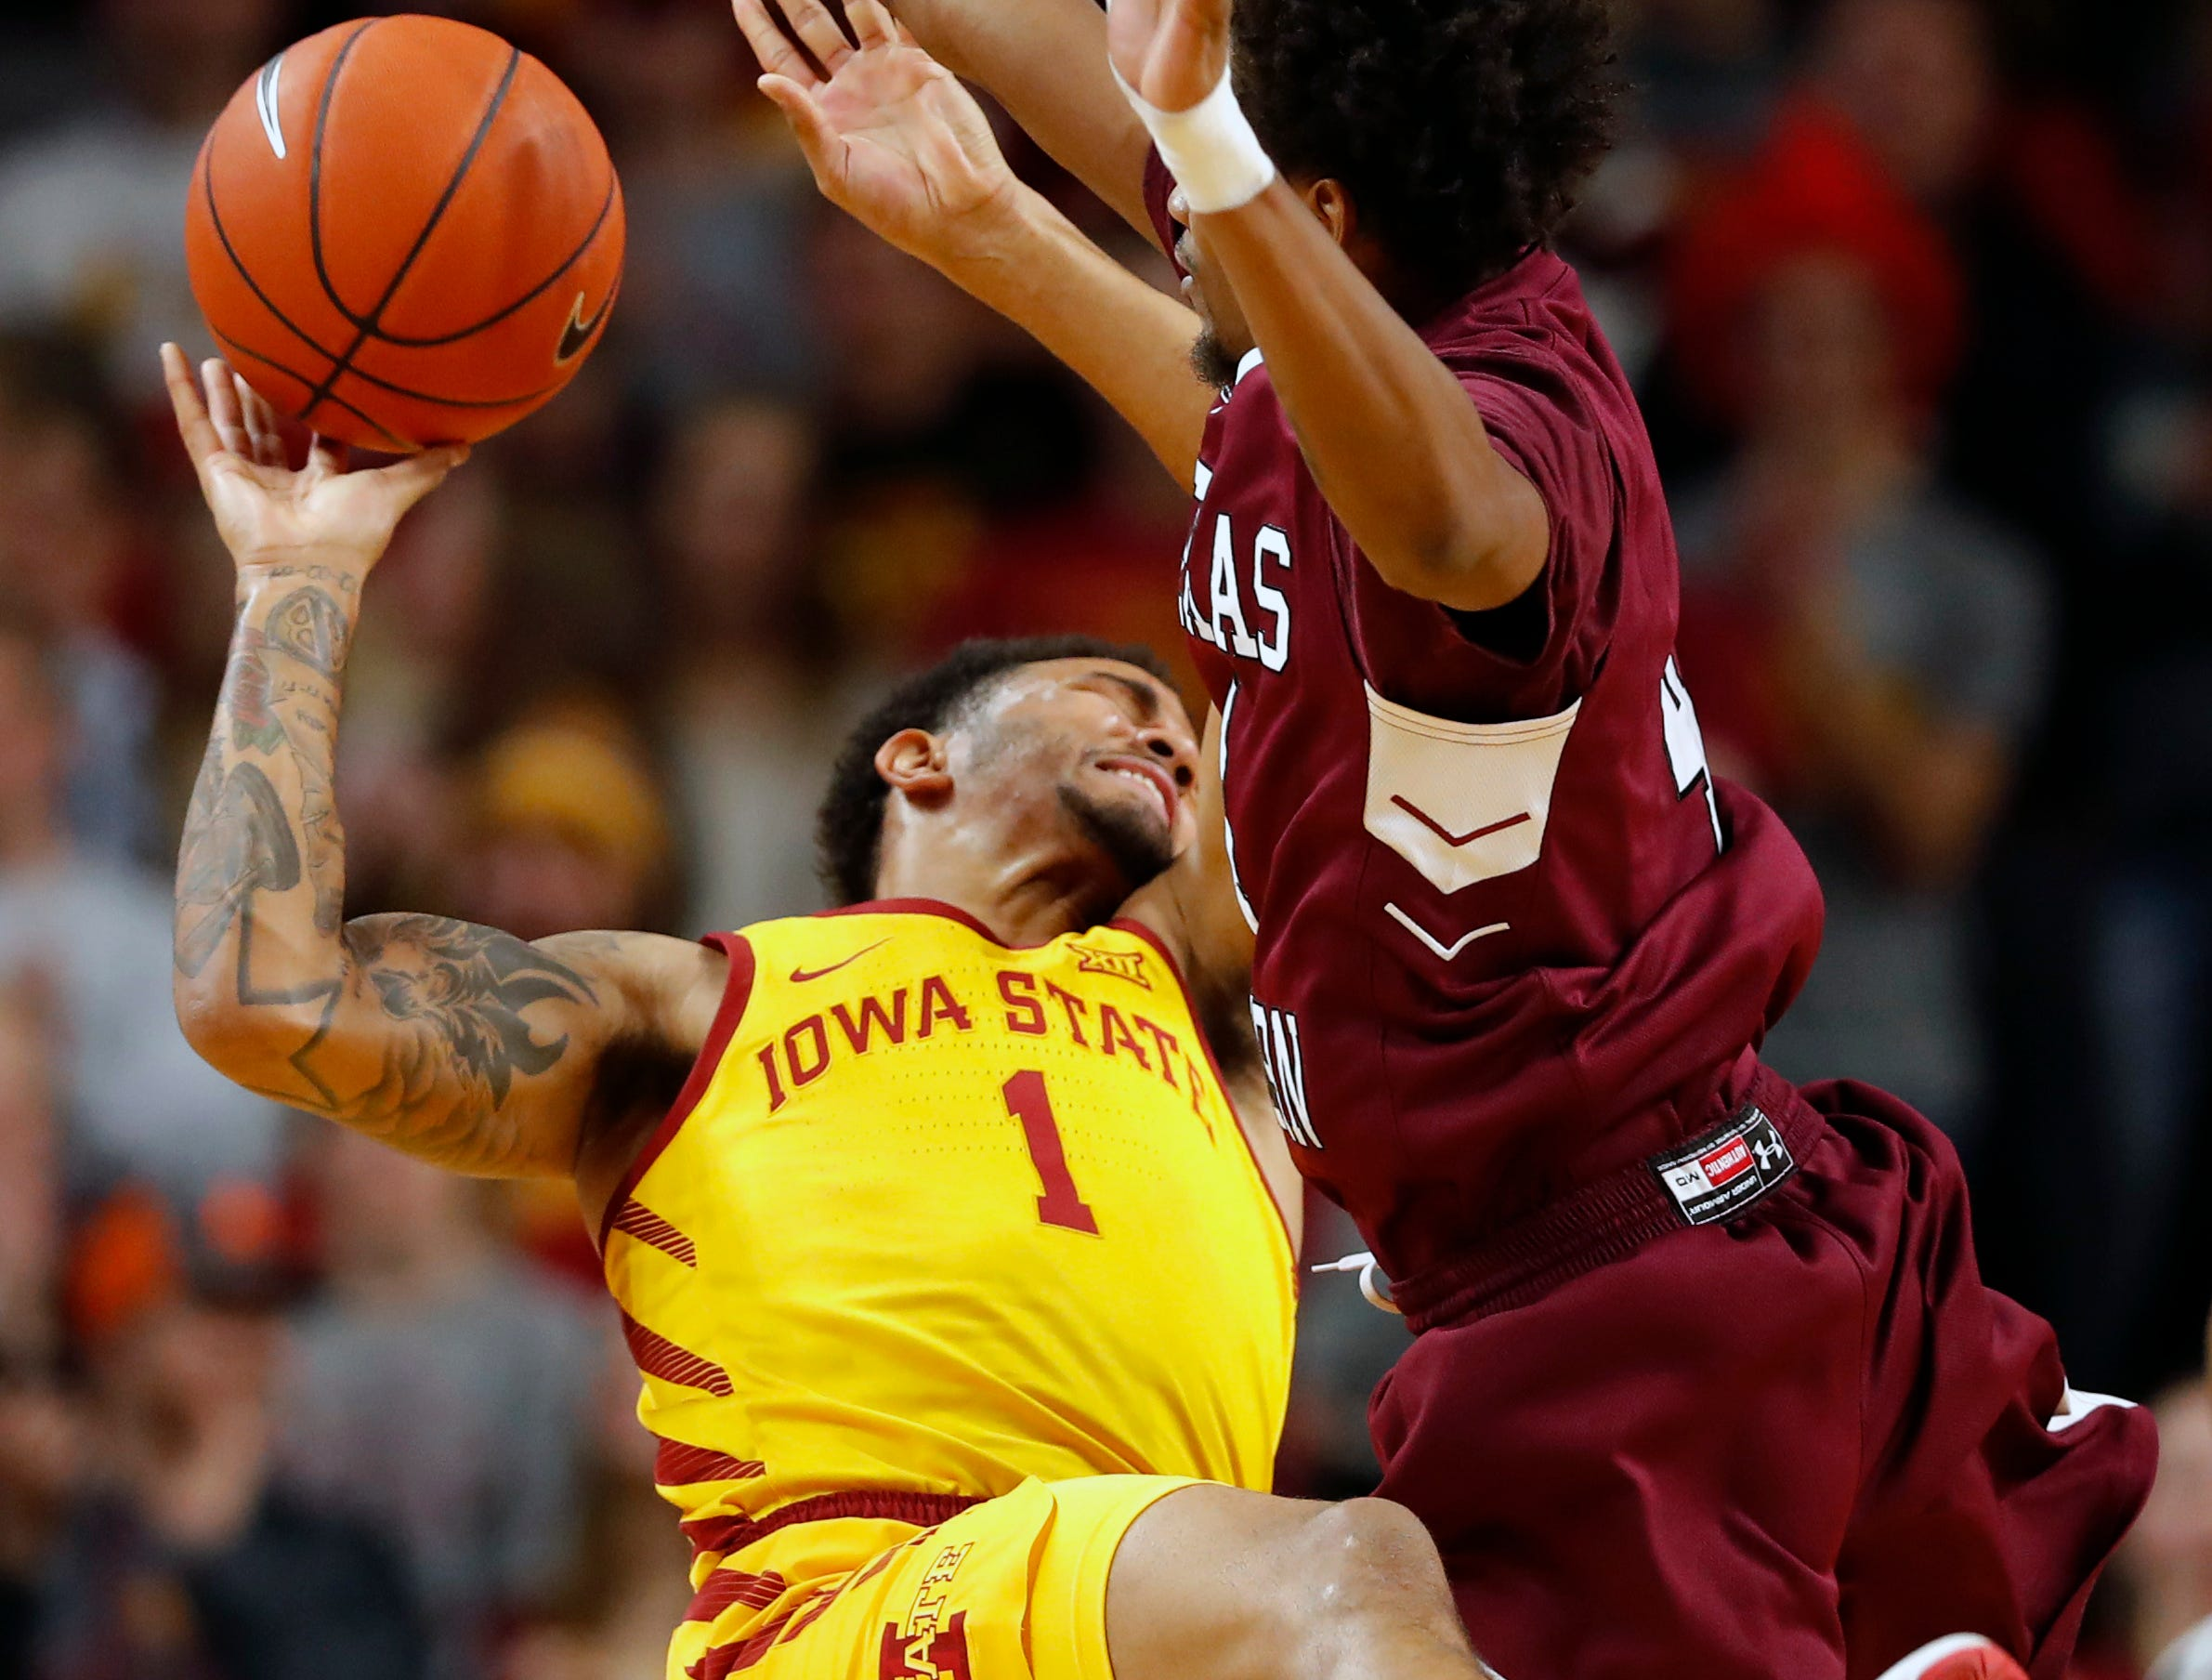 Iowa State guard Nick Weiler-Babb (1) is fouled by Texas Southern guard Derrick Bruce, right, during the first half of an NCAA college basketball game, Monday, Nov. 12, 2018, in Ames, Iowa.